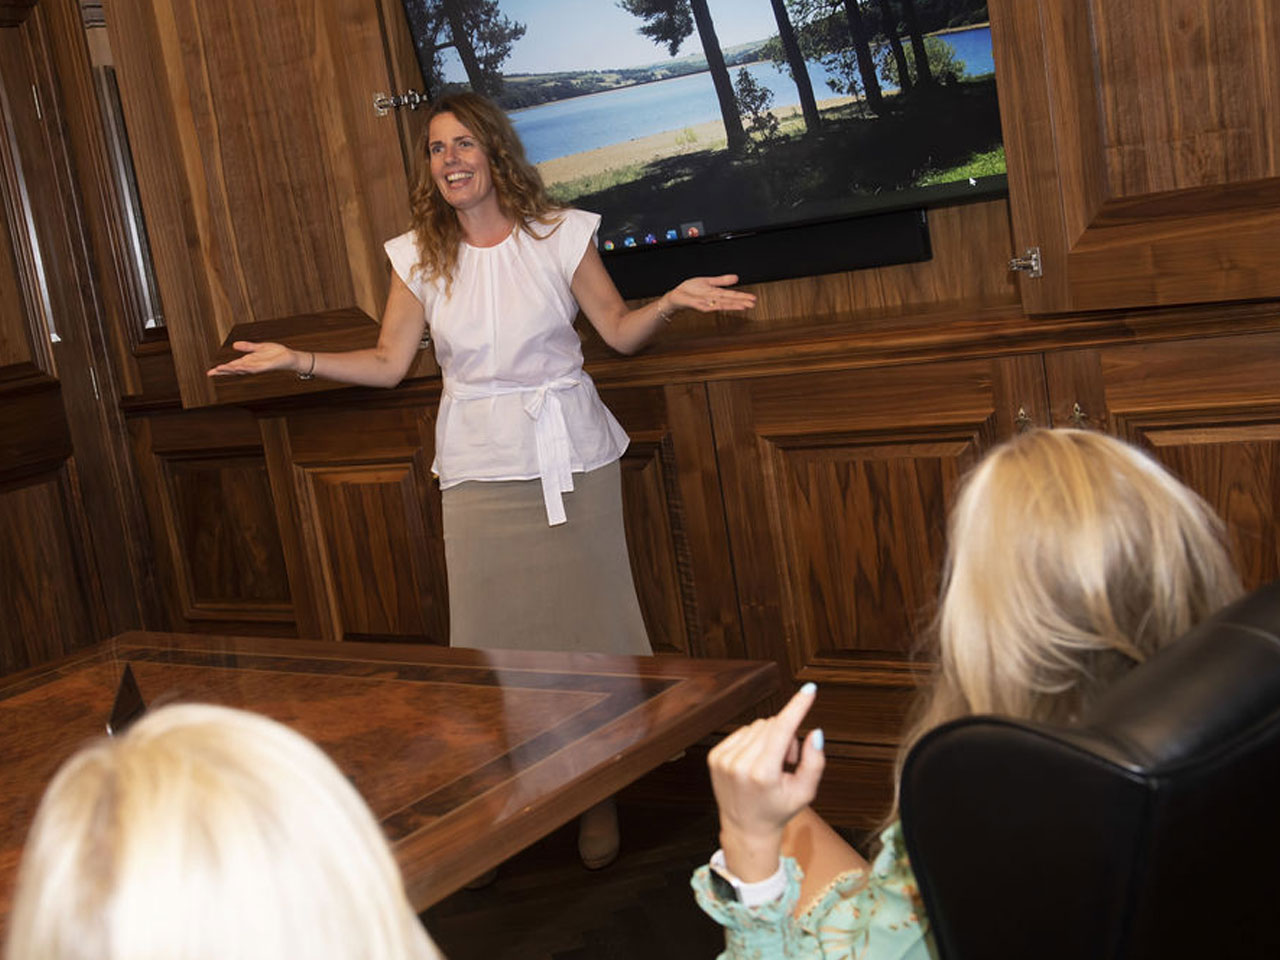 Harrogate Based Business Coach Launches Support Projects for Local Businesses & Communities